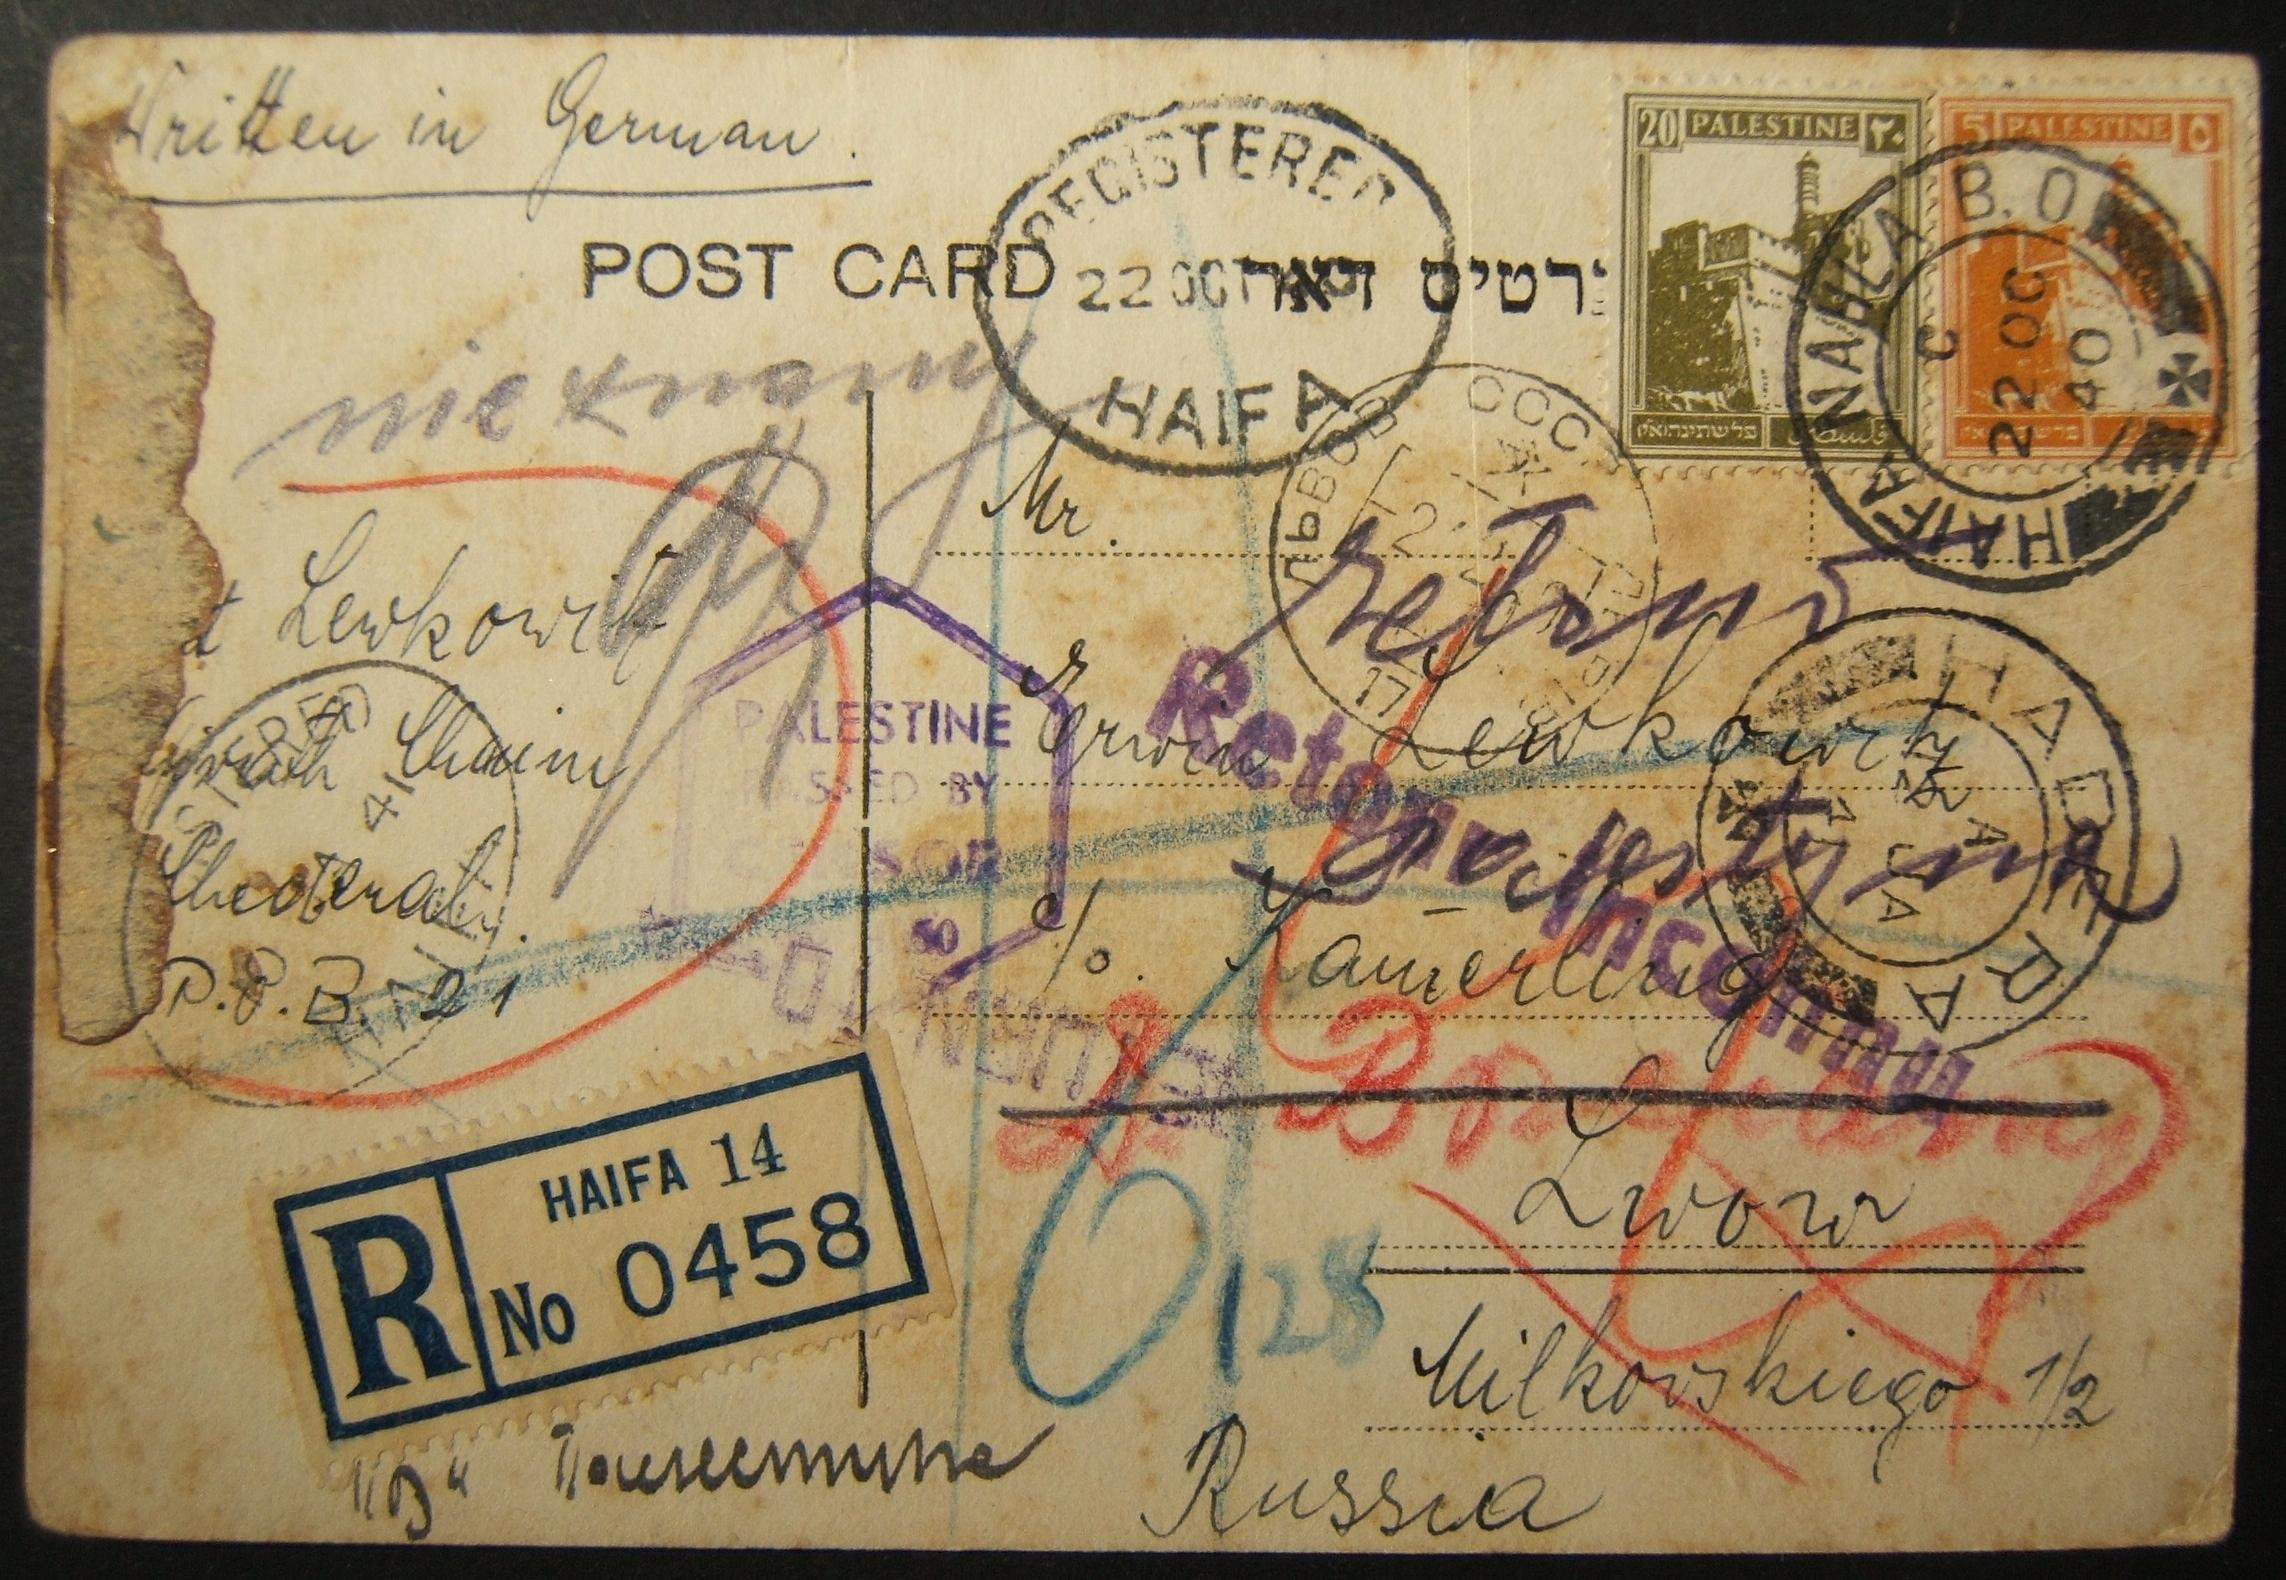 10/1940 WWII mail from HAIFA to Soviet-occupied LVOV; undelivered & returned to HADERA